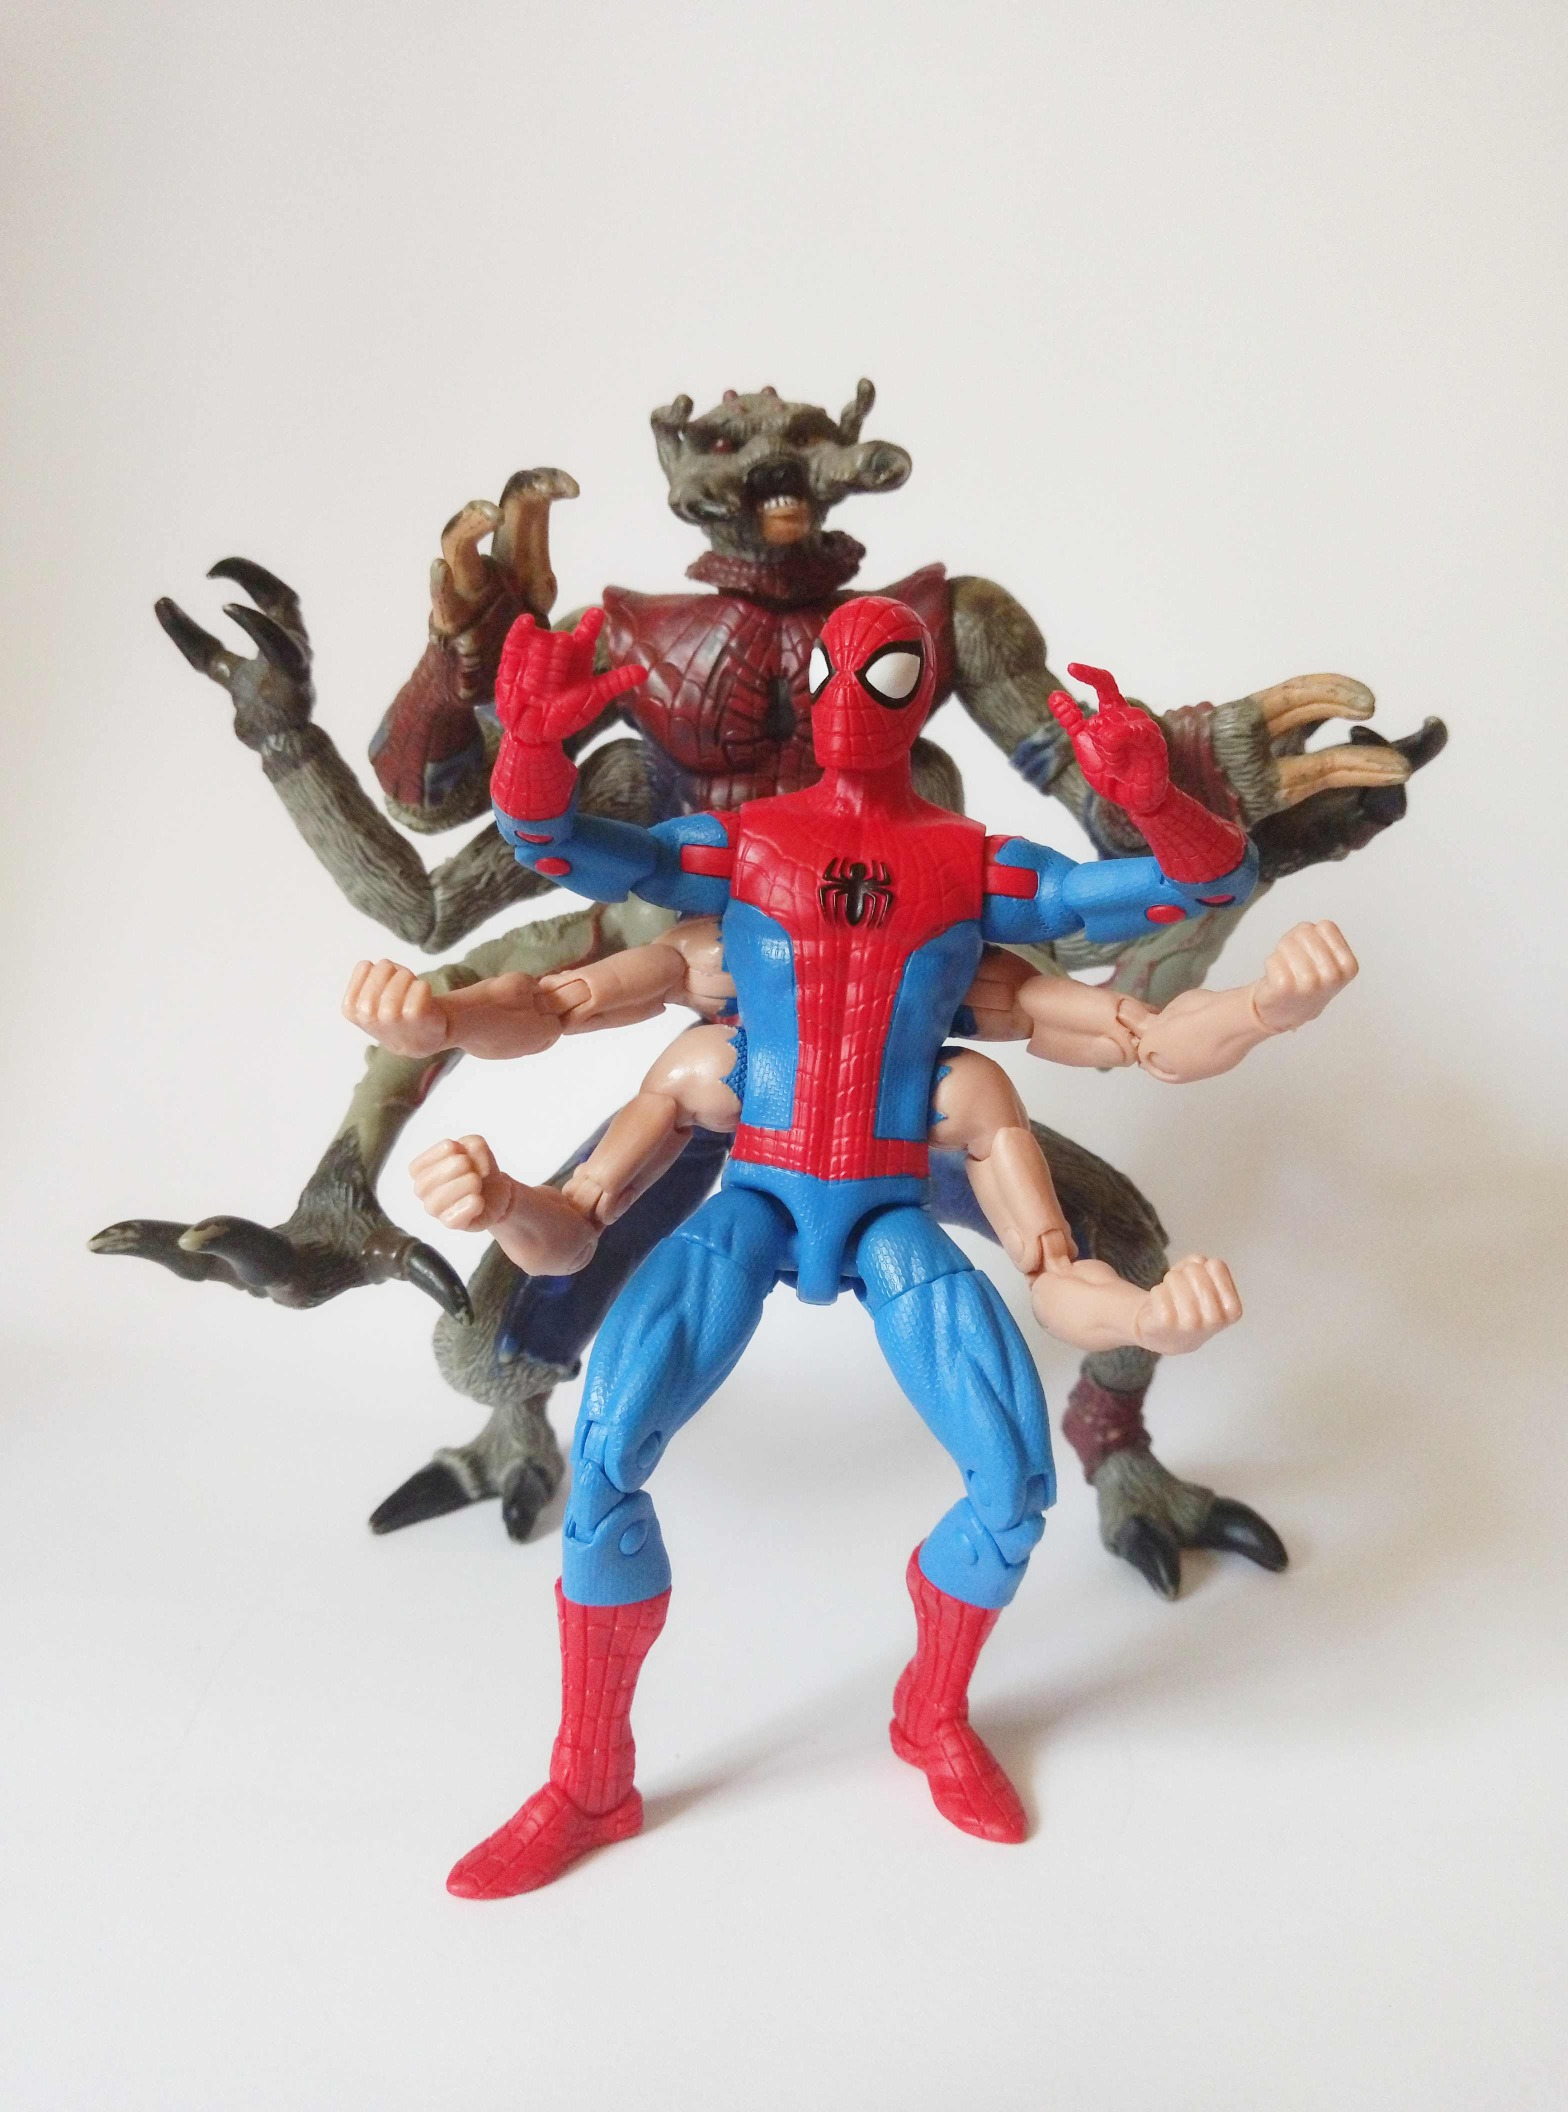 Marvel Legends Sixarms Spiderman vs. Marvel Legends Man-Spider